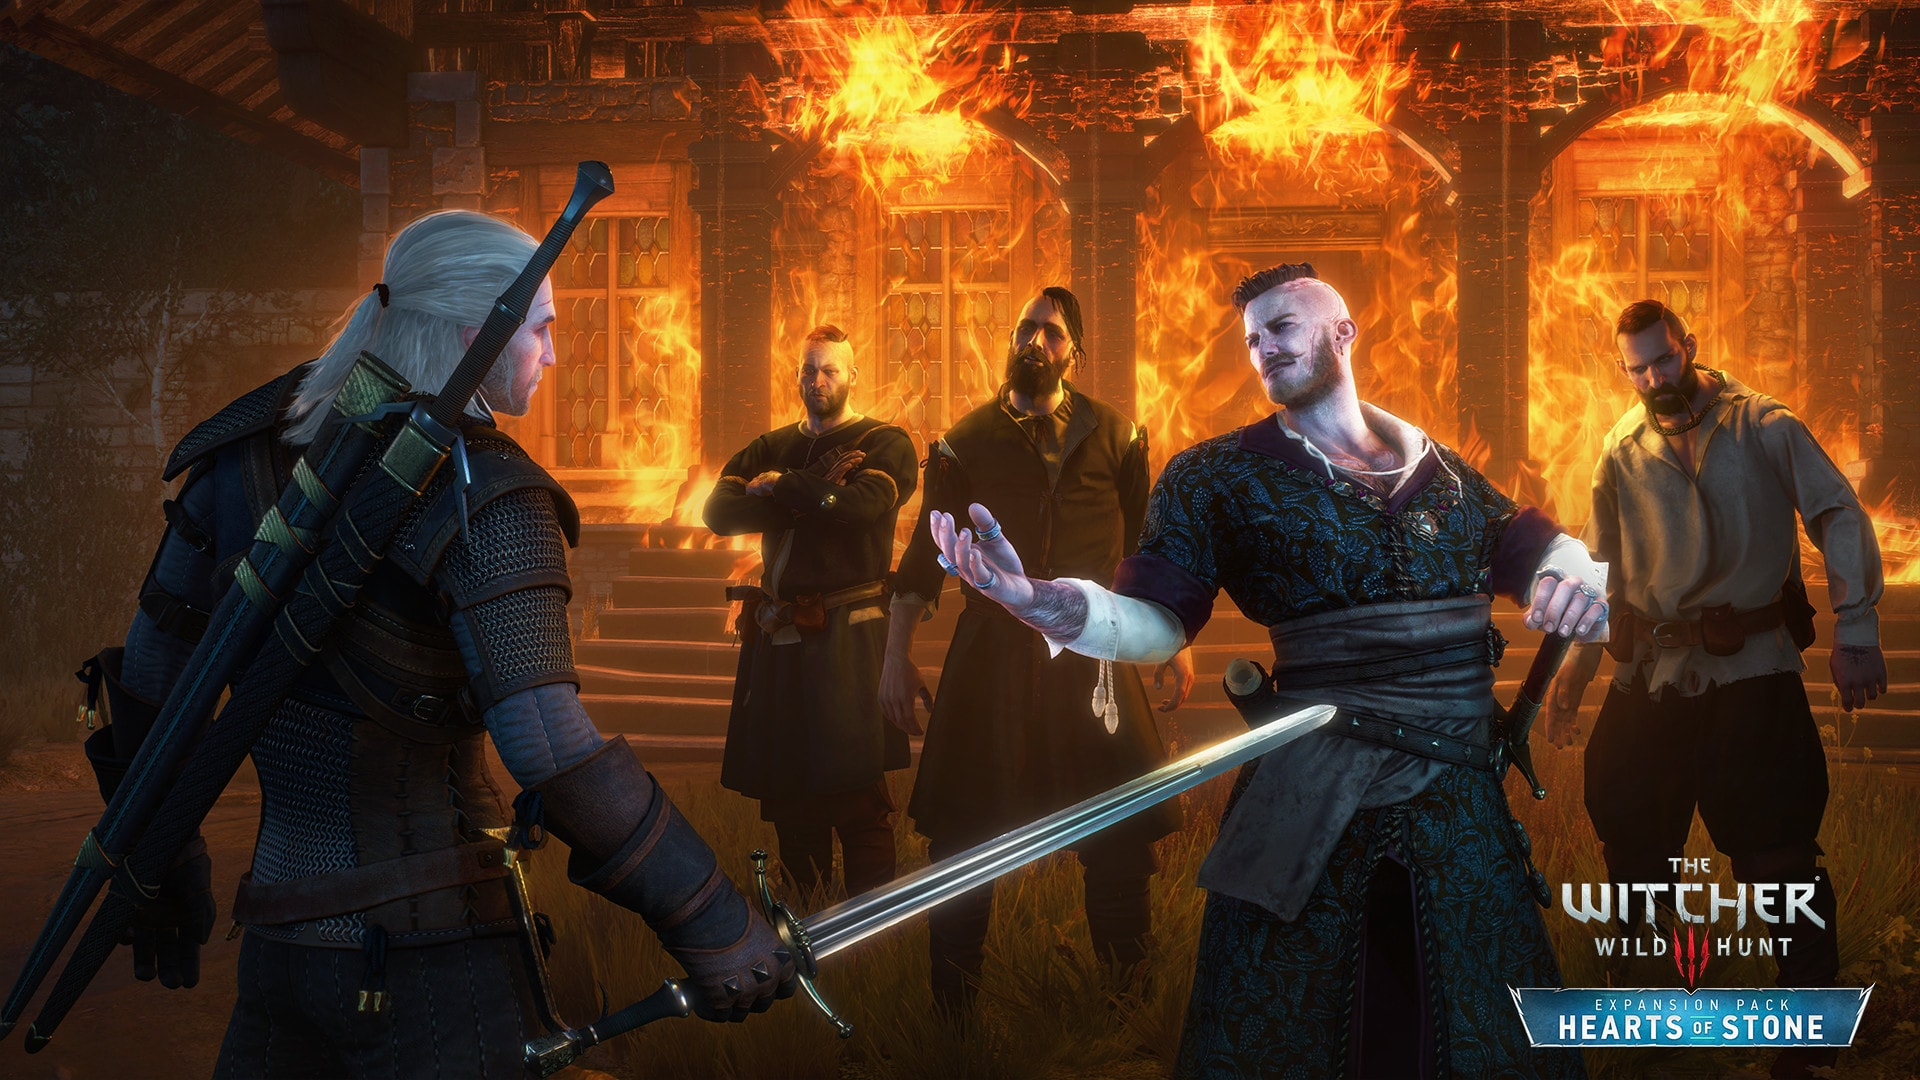 The Witcher 3: Wild Hunt - Hearts of Stone (PC) - GOG.COM Key - GLOBAL - 4